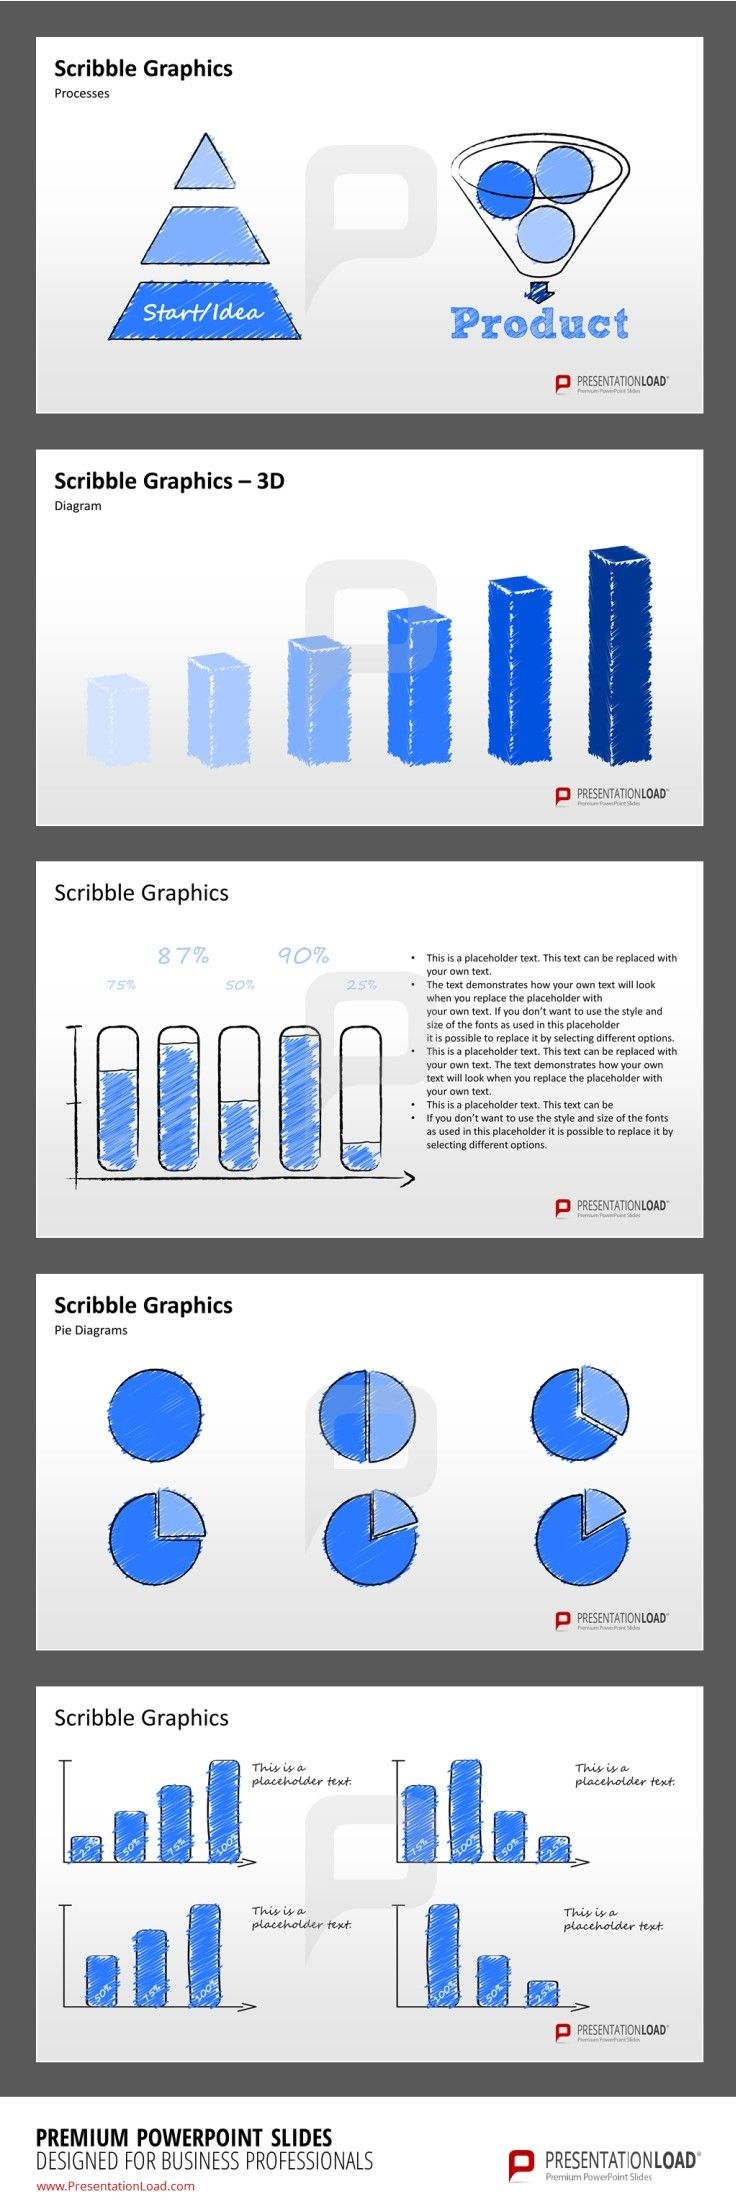 Scribble Graphics PowerPoint Templates Icons and sketches